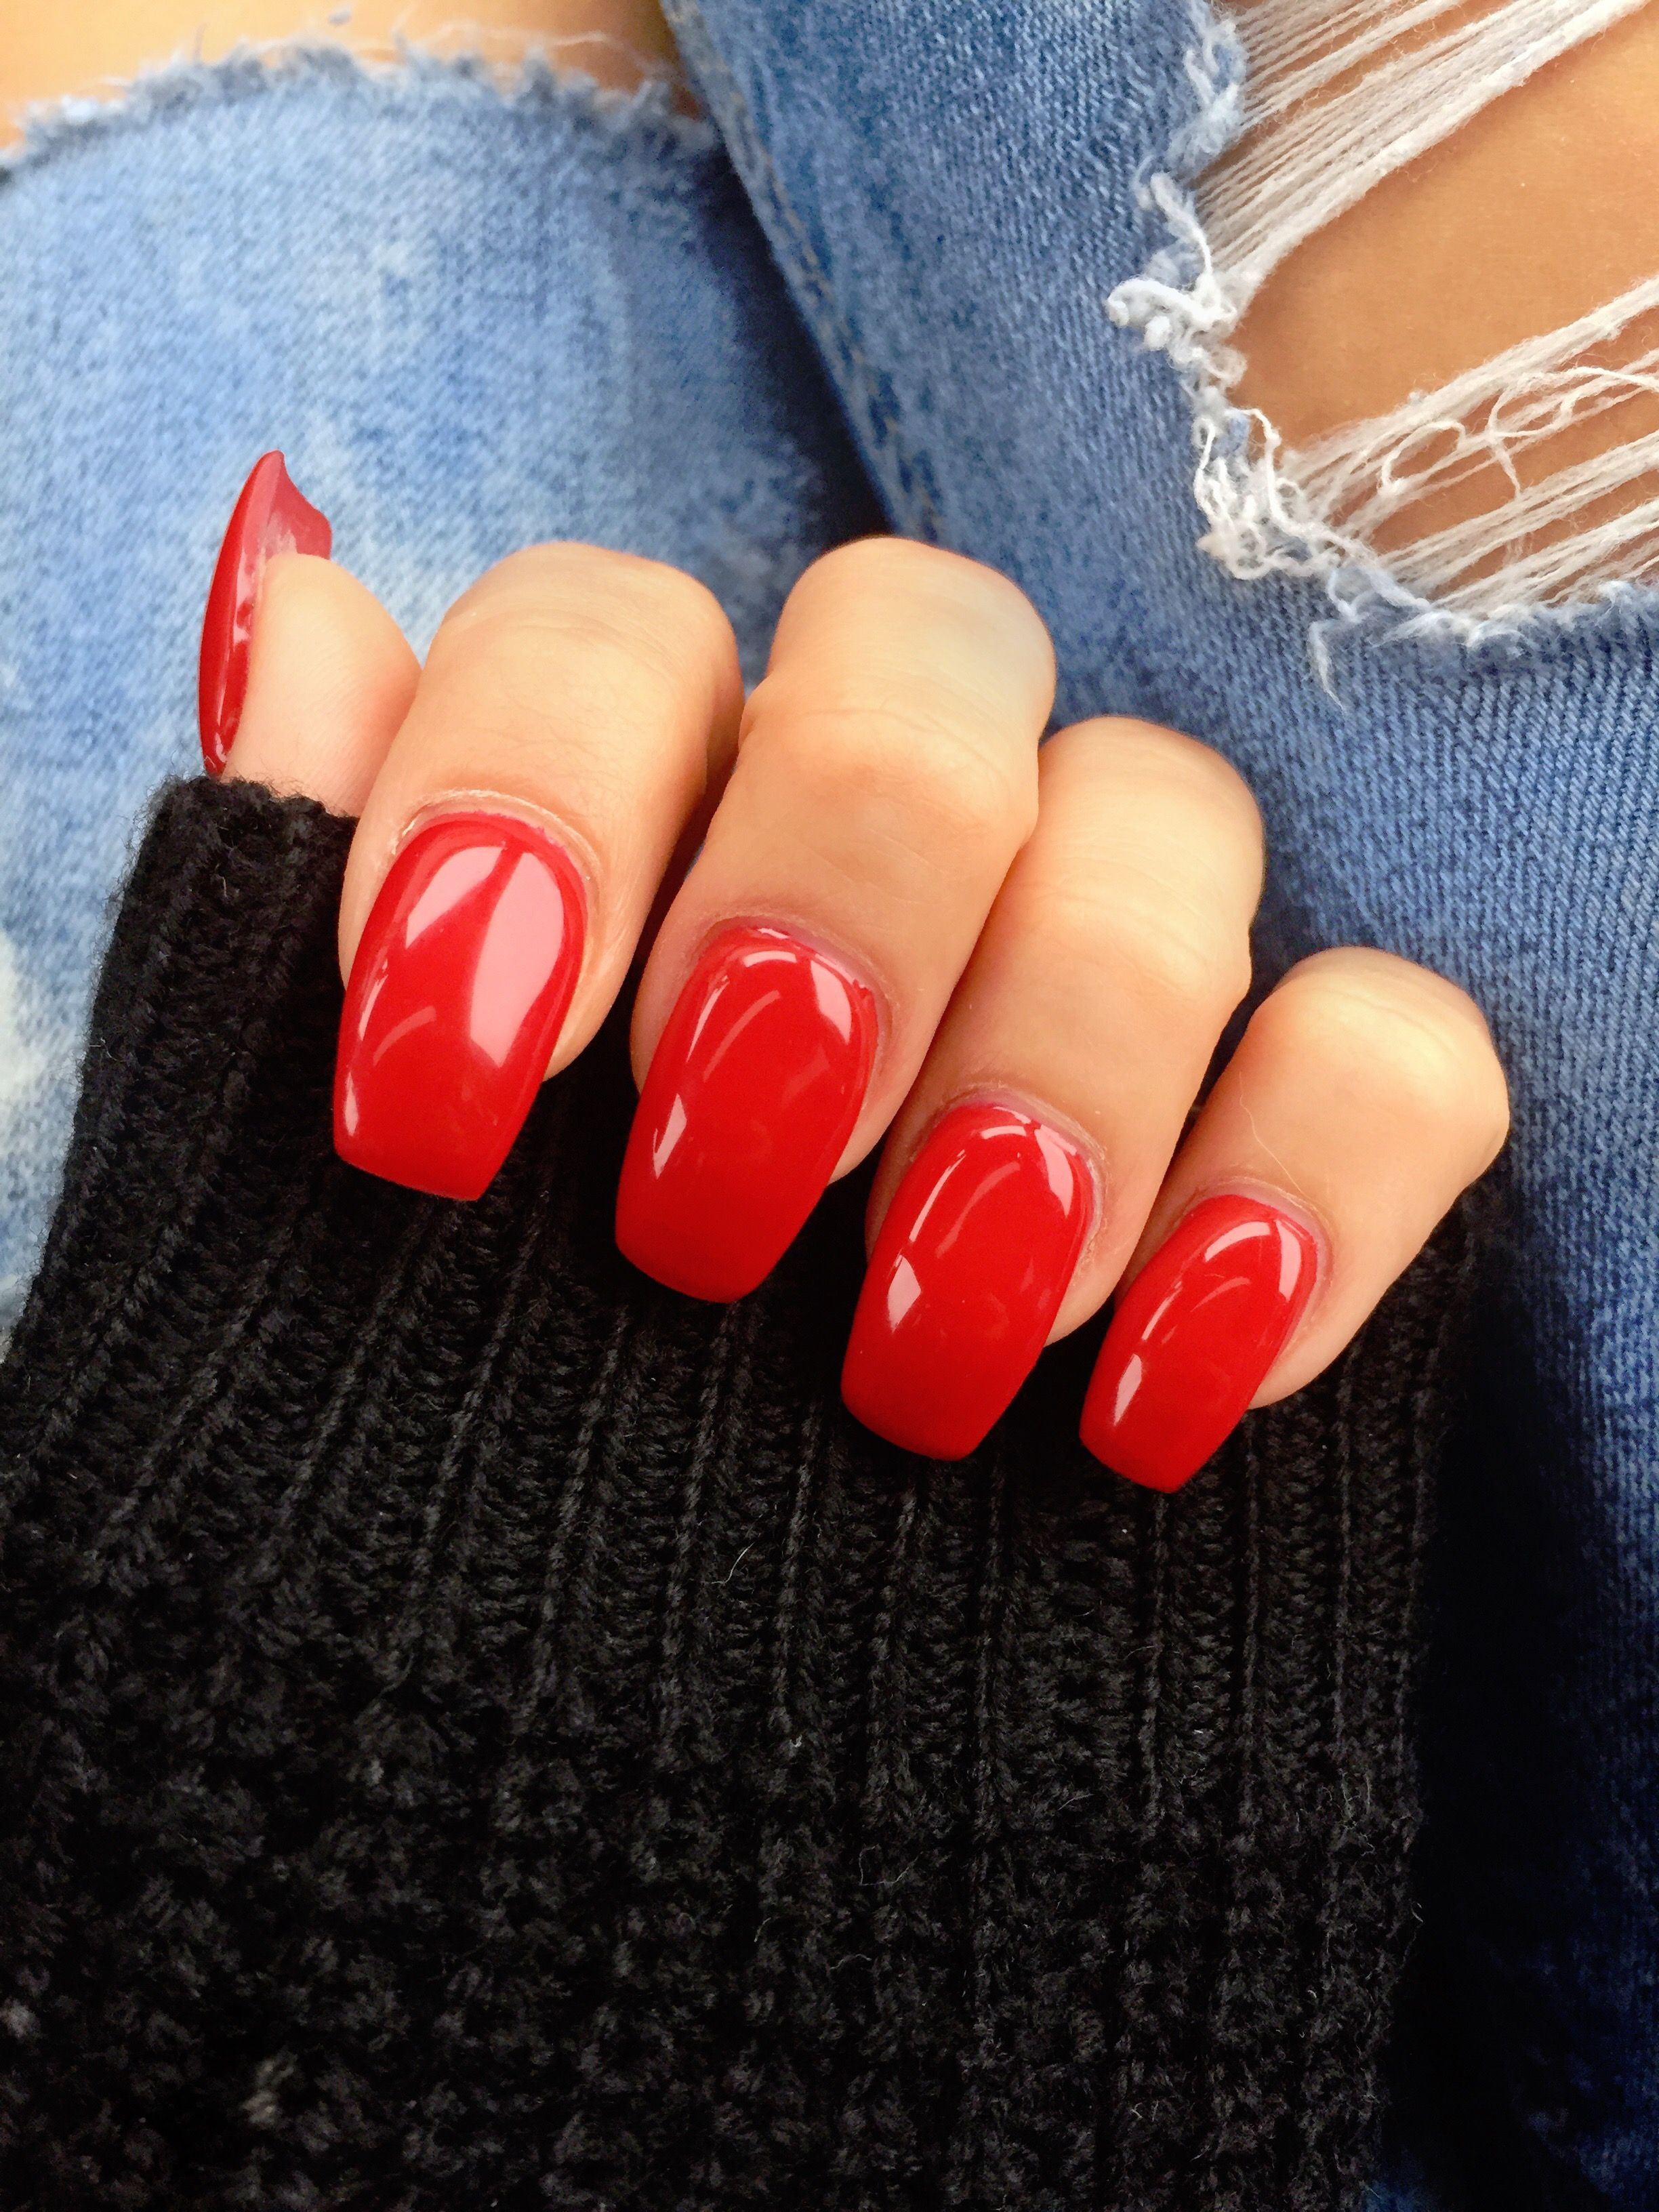 Medium Length Monroe Red Coffin Ballerina Gel Nails T Red Gel Nails Ballerina Gel Nails Red Acrylic Nails